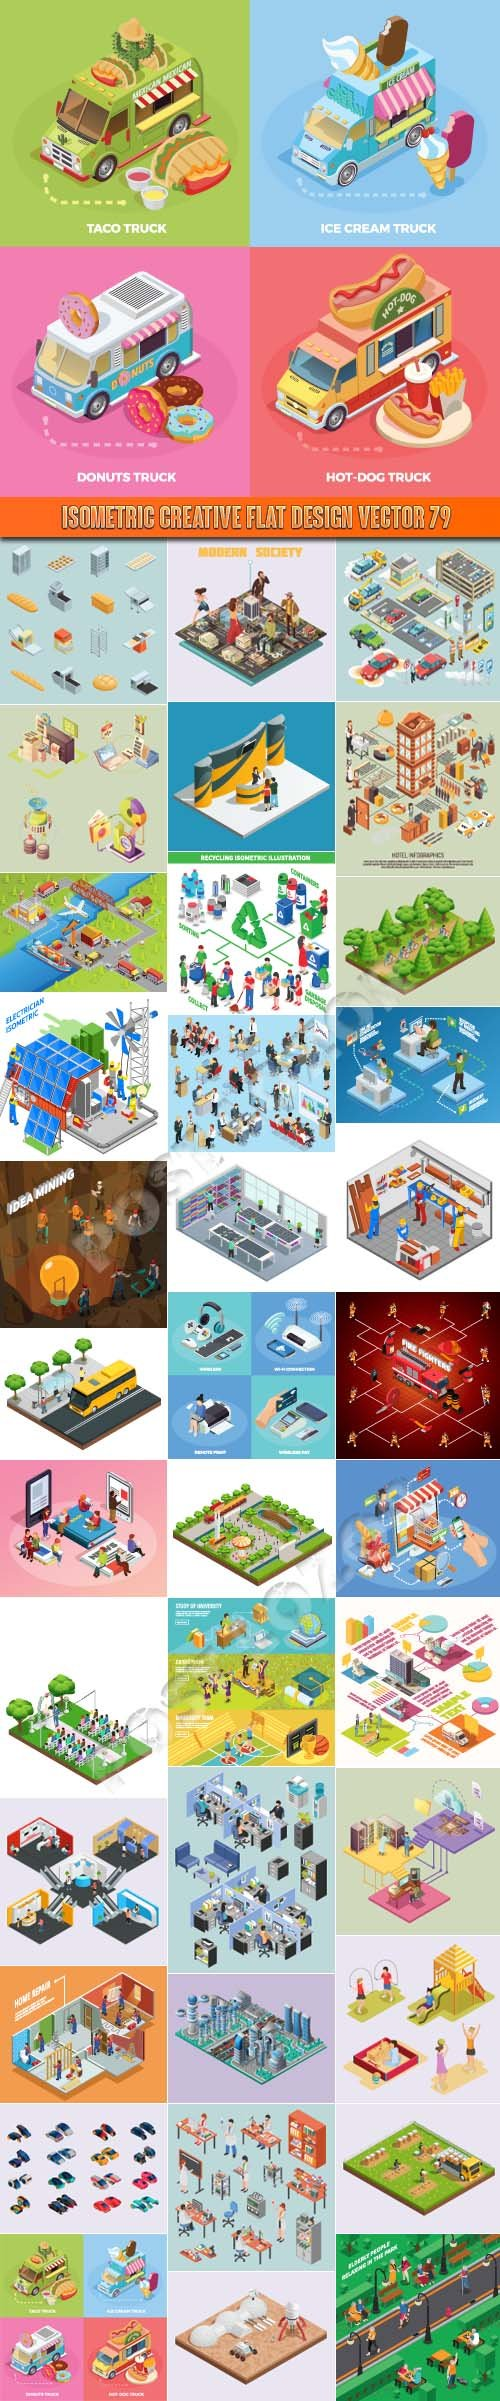 Isometric creative flat design vector 79